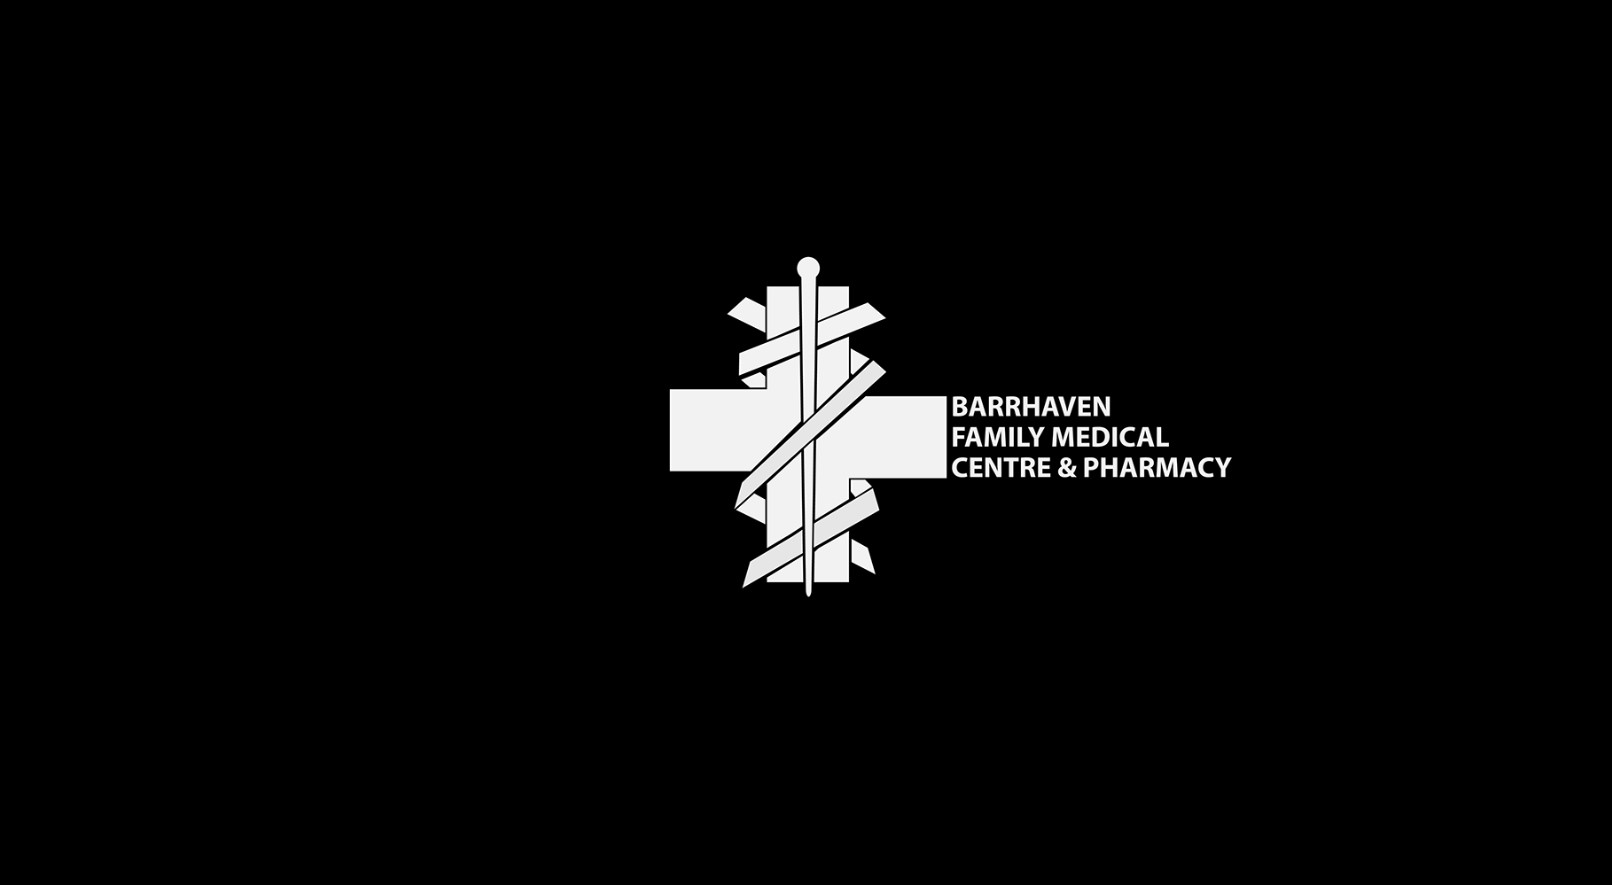 Logo design for Barrhaven hospital